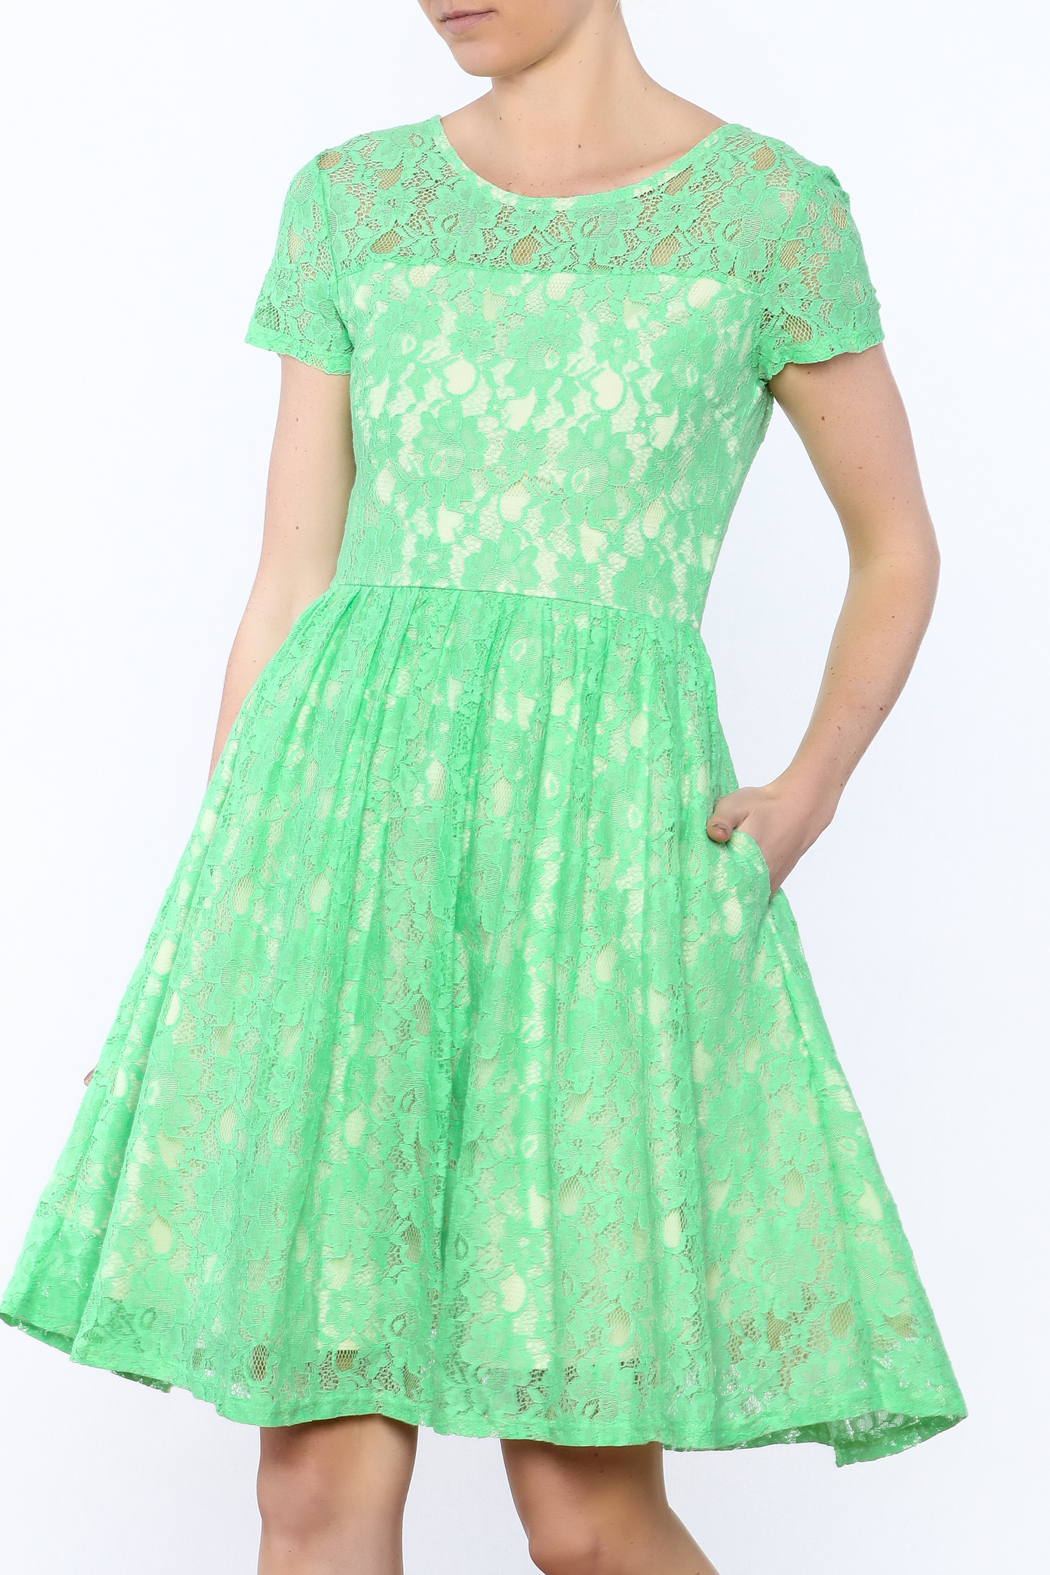 Apricity Mint Lace Dress - Front Cropped Image